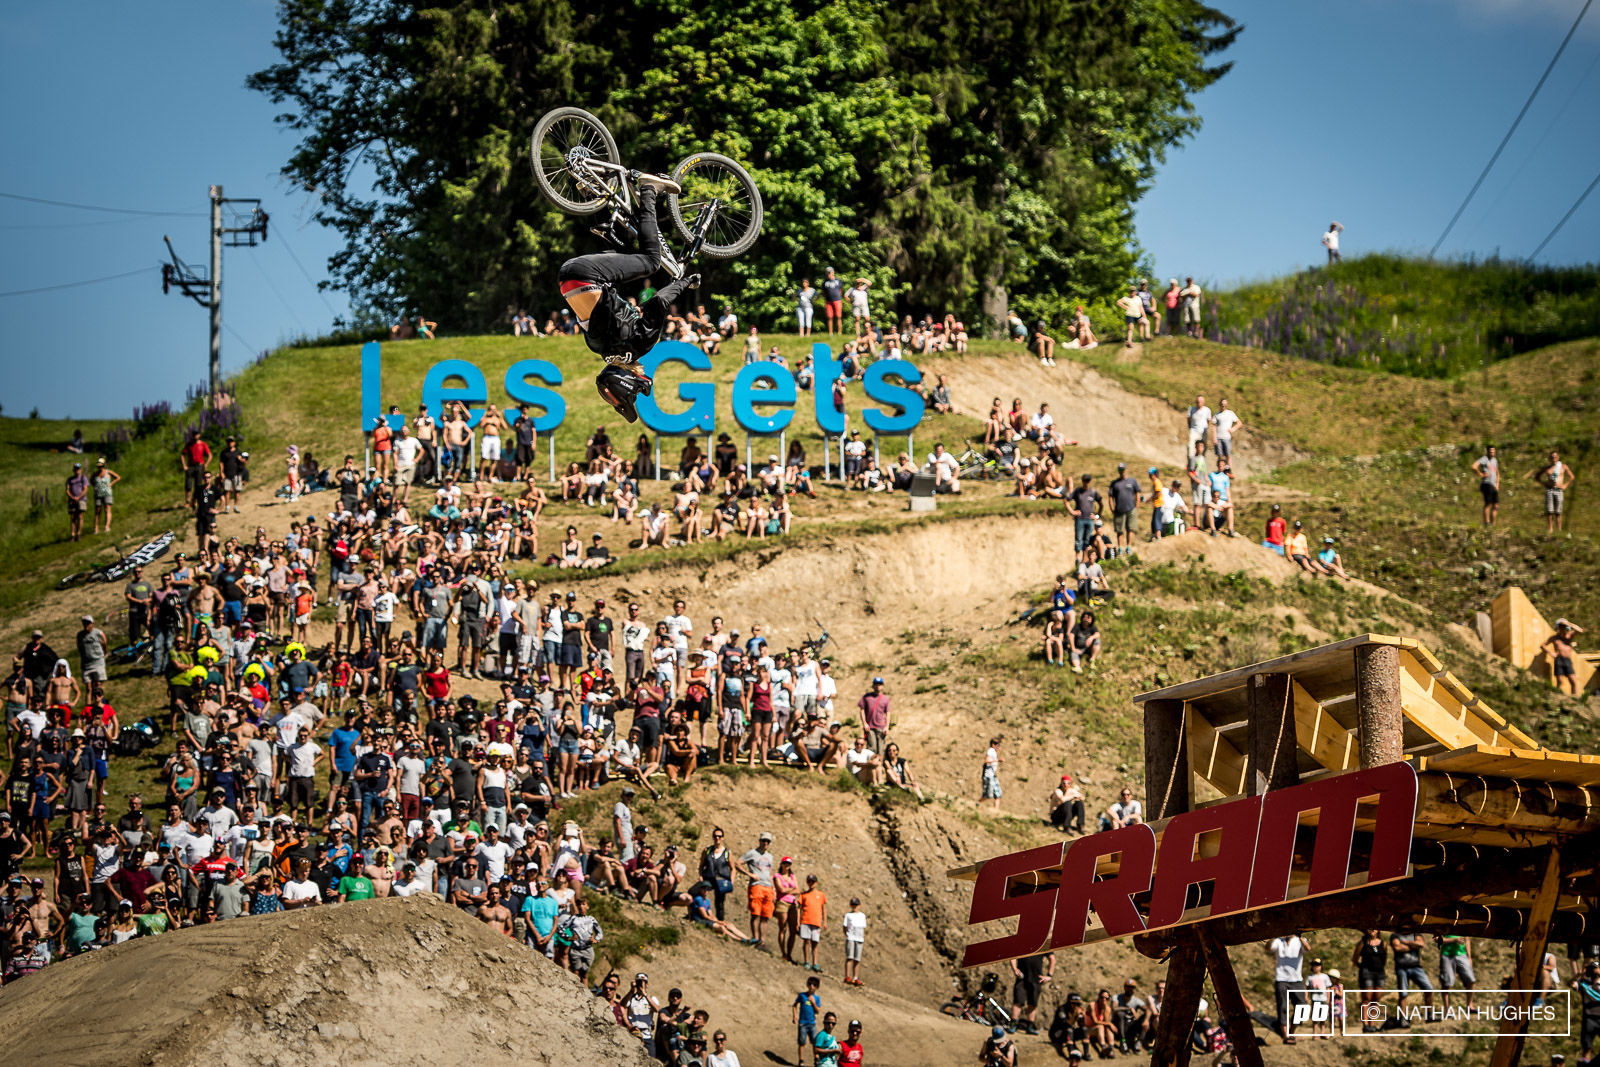 Logan Peat was hoping for bigger and better and will be looking for some retribution in Austria.